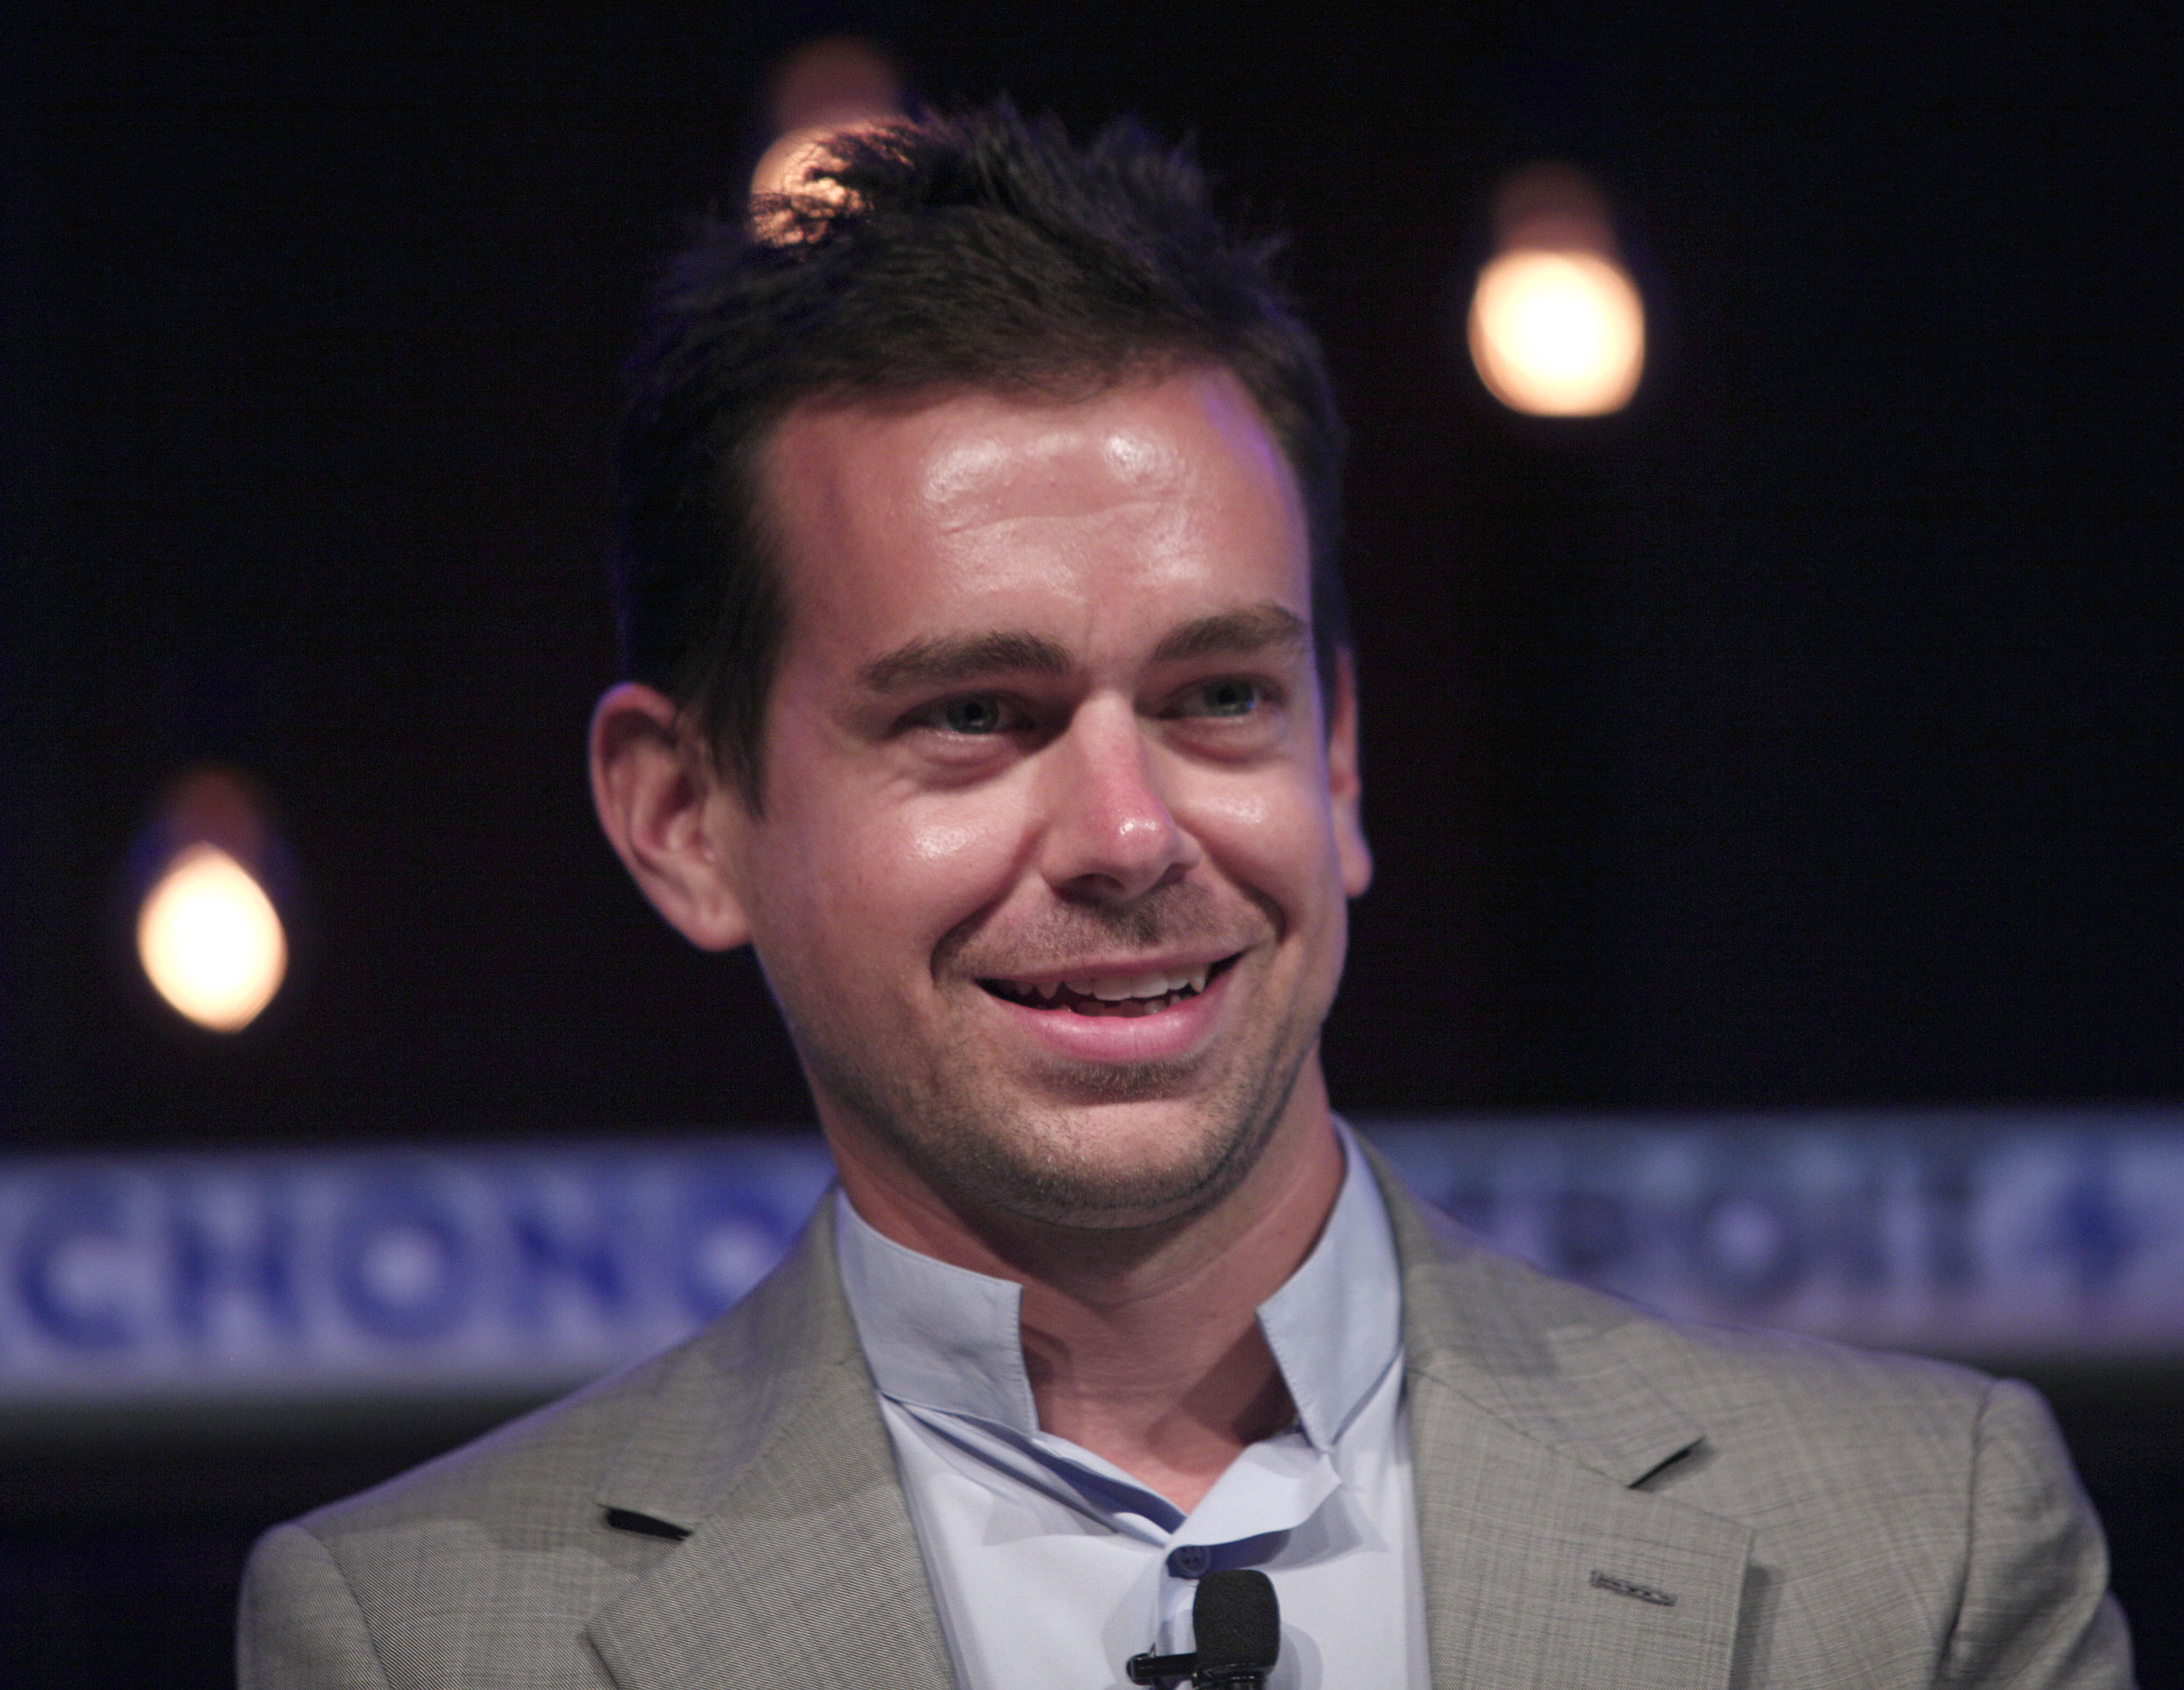 Jack Dorsey gives 10% equity back to Square